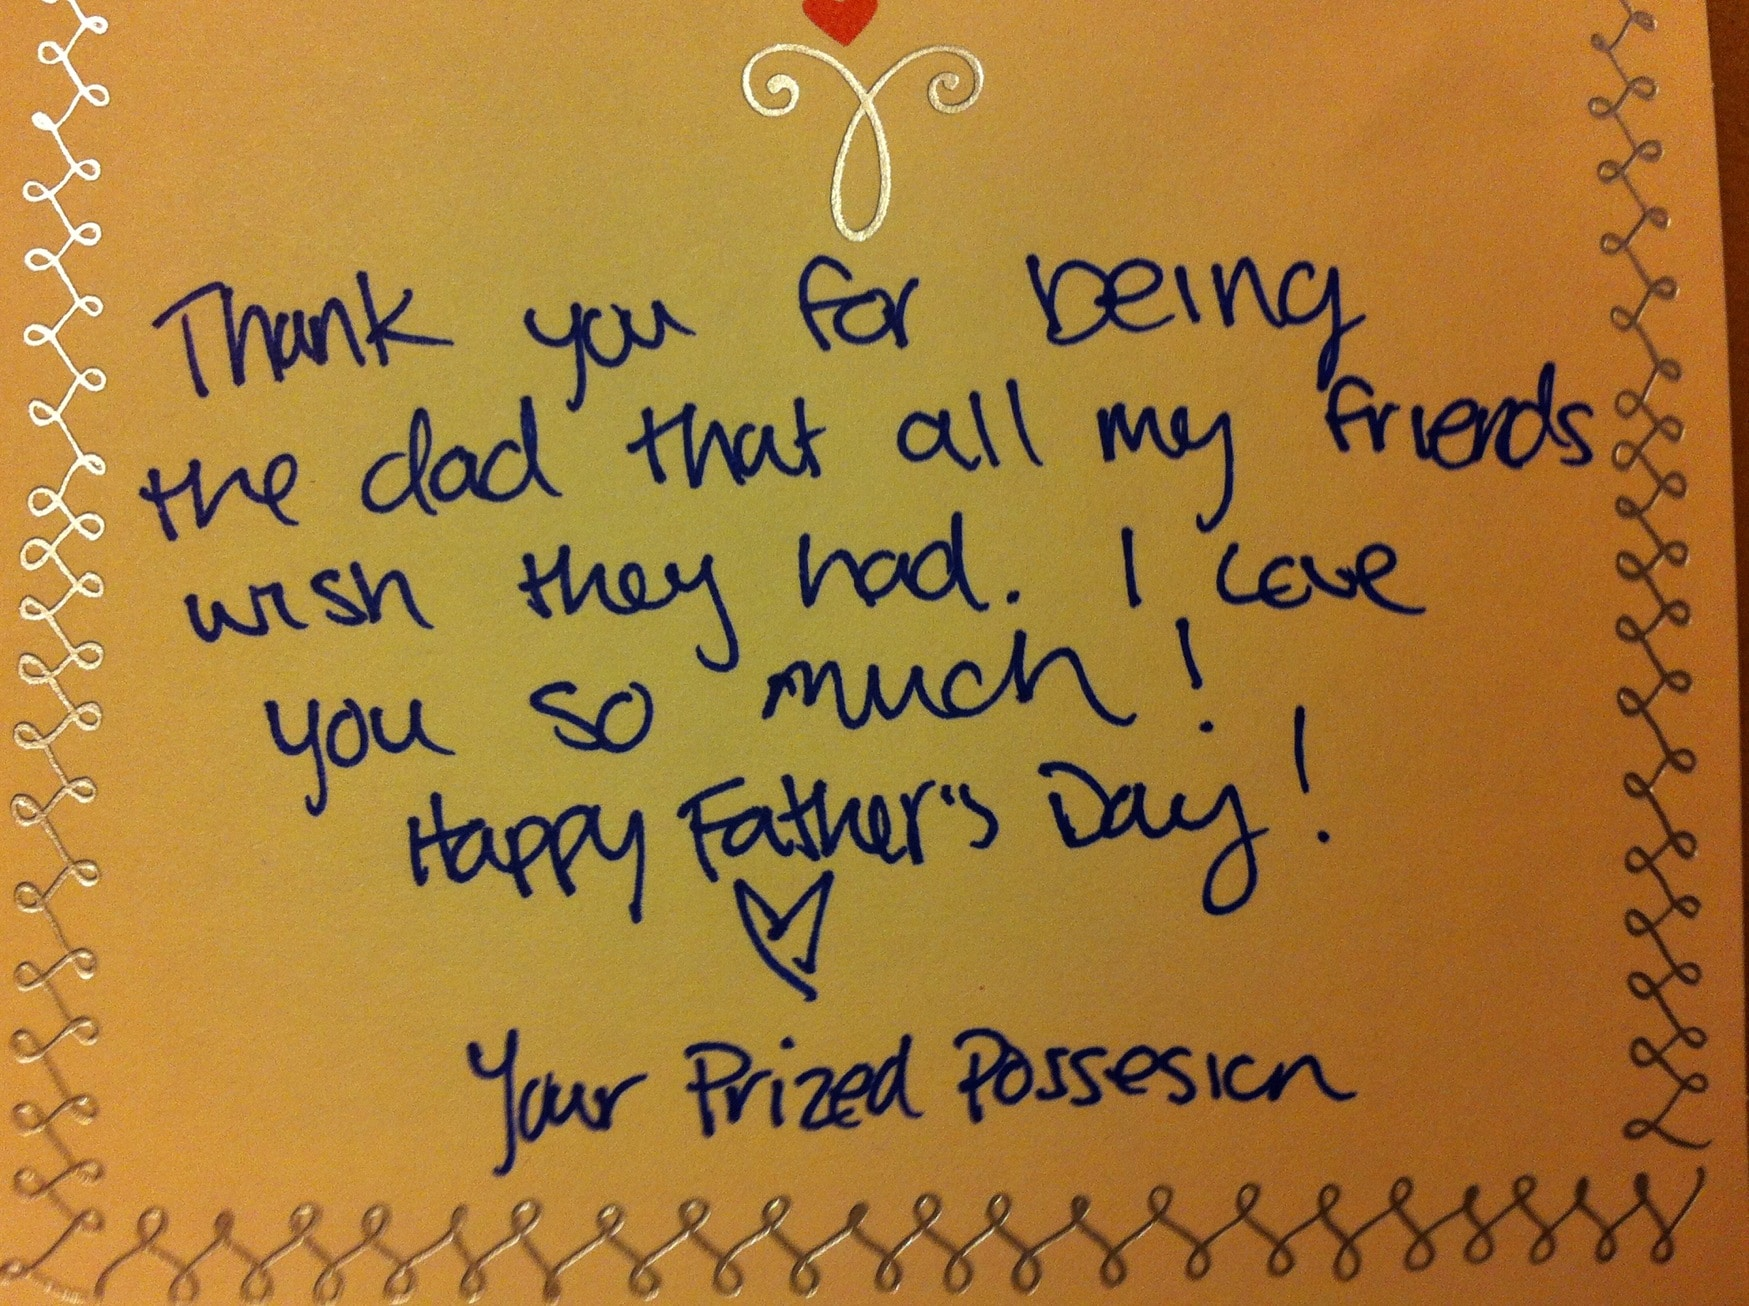 Fathers day messages from daughter free hd images fathers day messages from daughter m4hsunfo